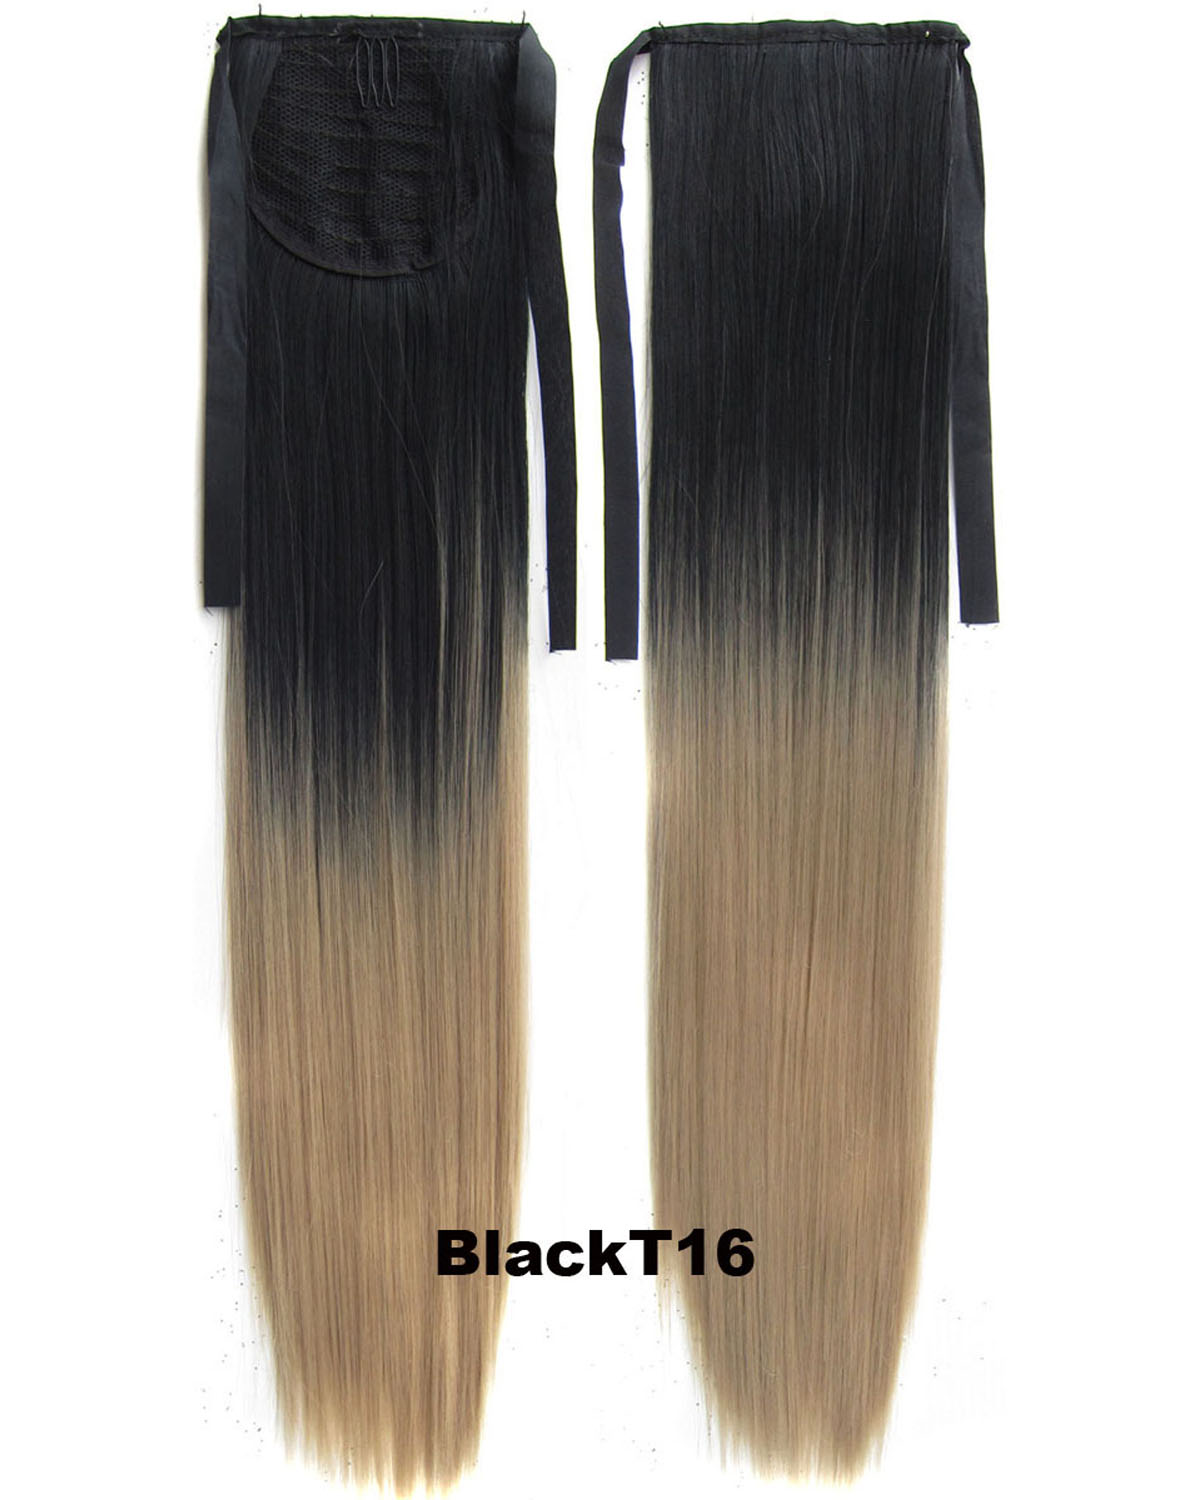 22 Inch Lady Straight and Long Lace/Ribbon Synthetic Hair Ponytail  BlackT16 Ombre High-quality